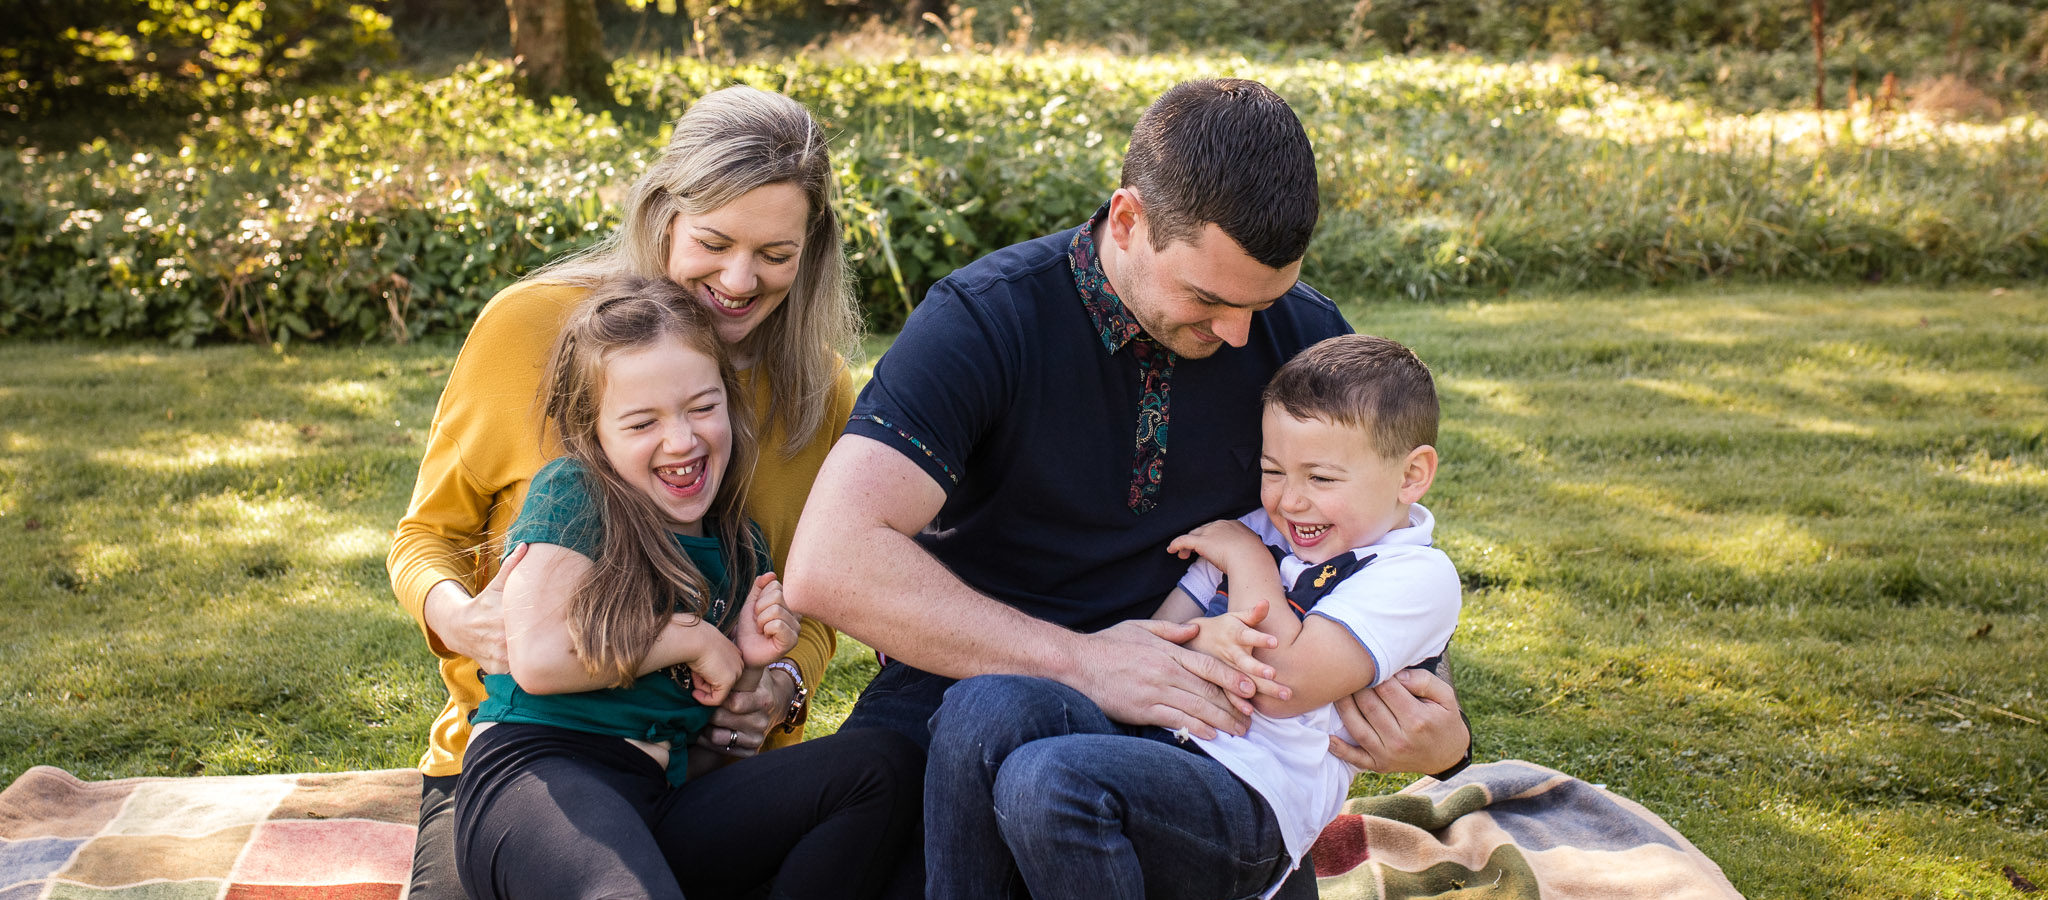 Family laughing - leith hall - family photographer aberdeen aberdeenshire - debbie dee photography